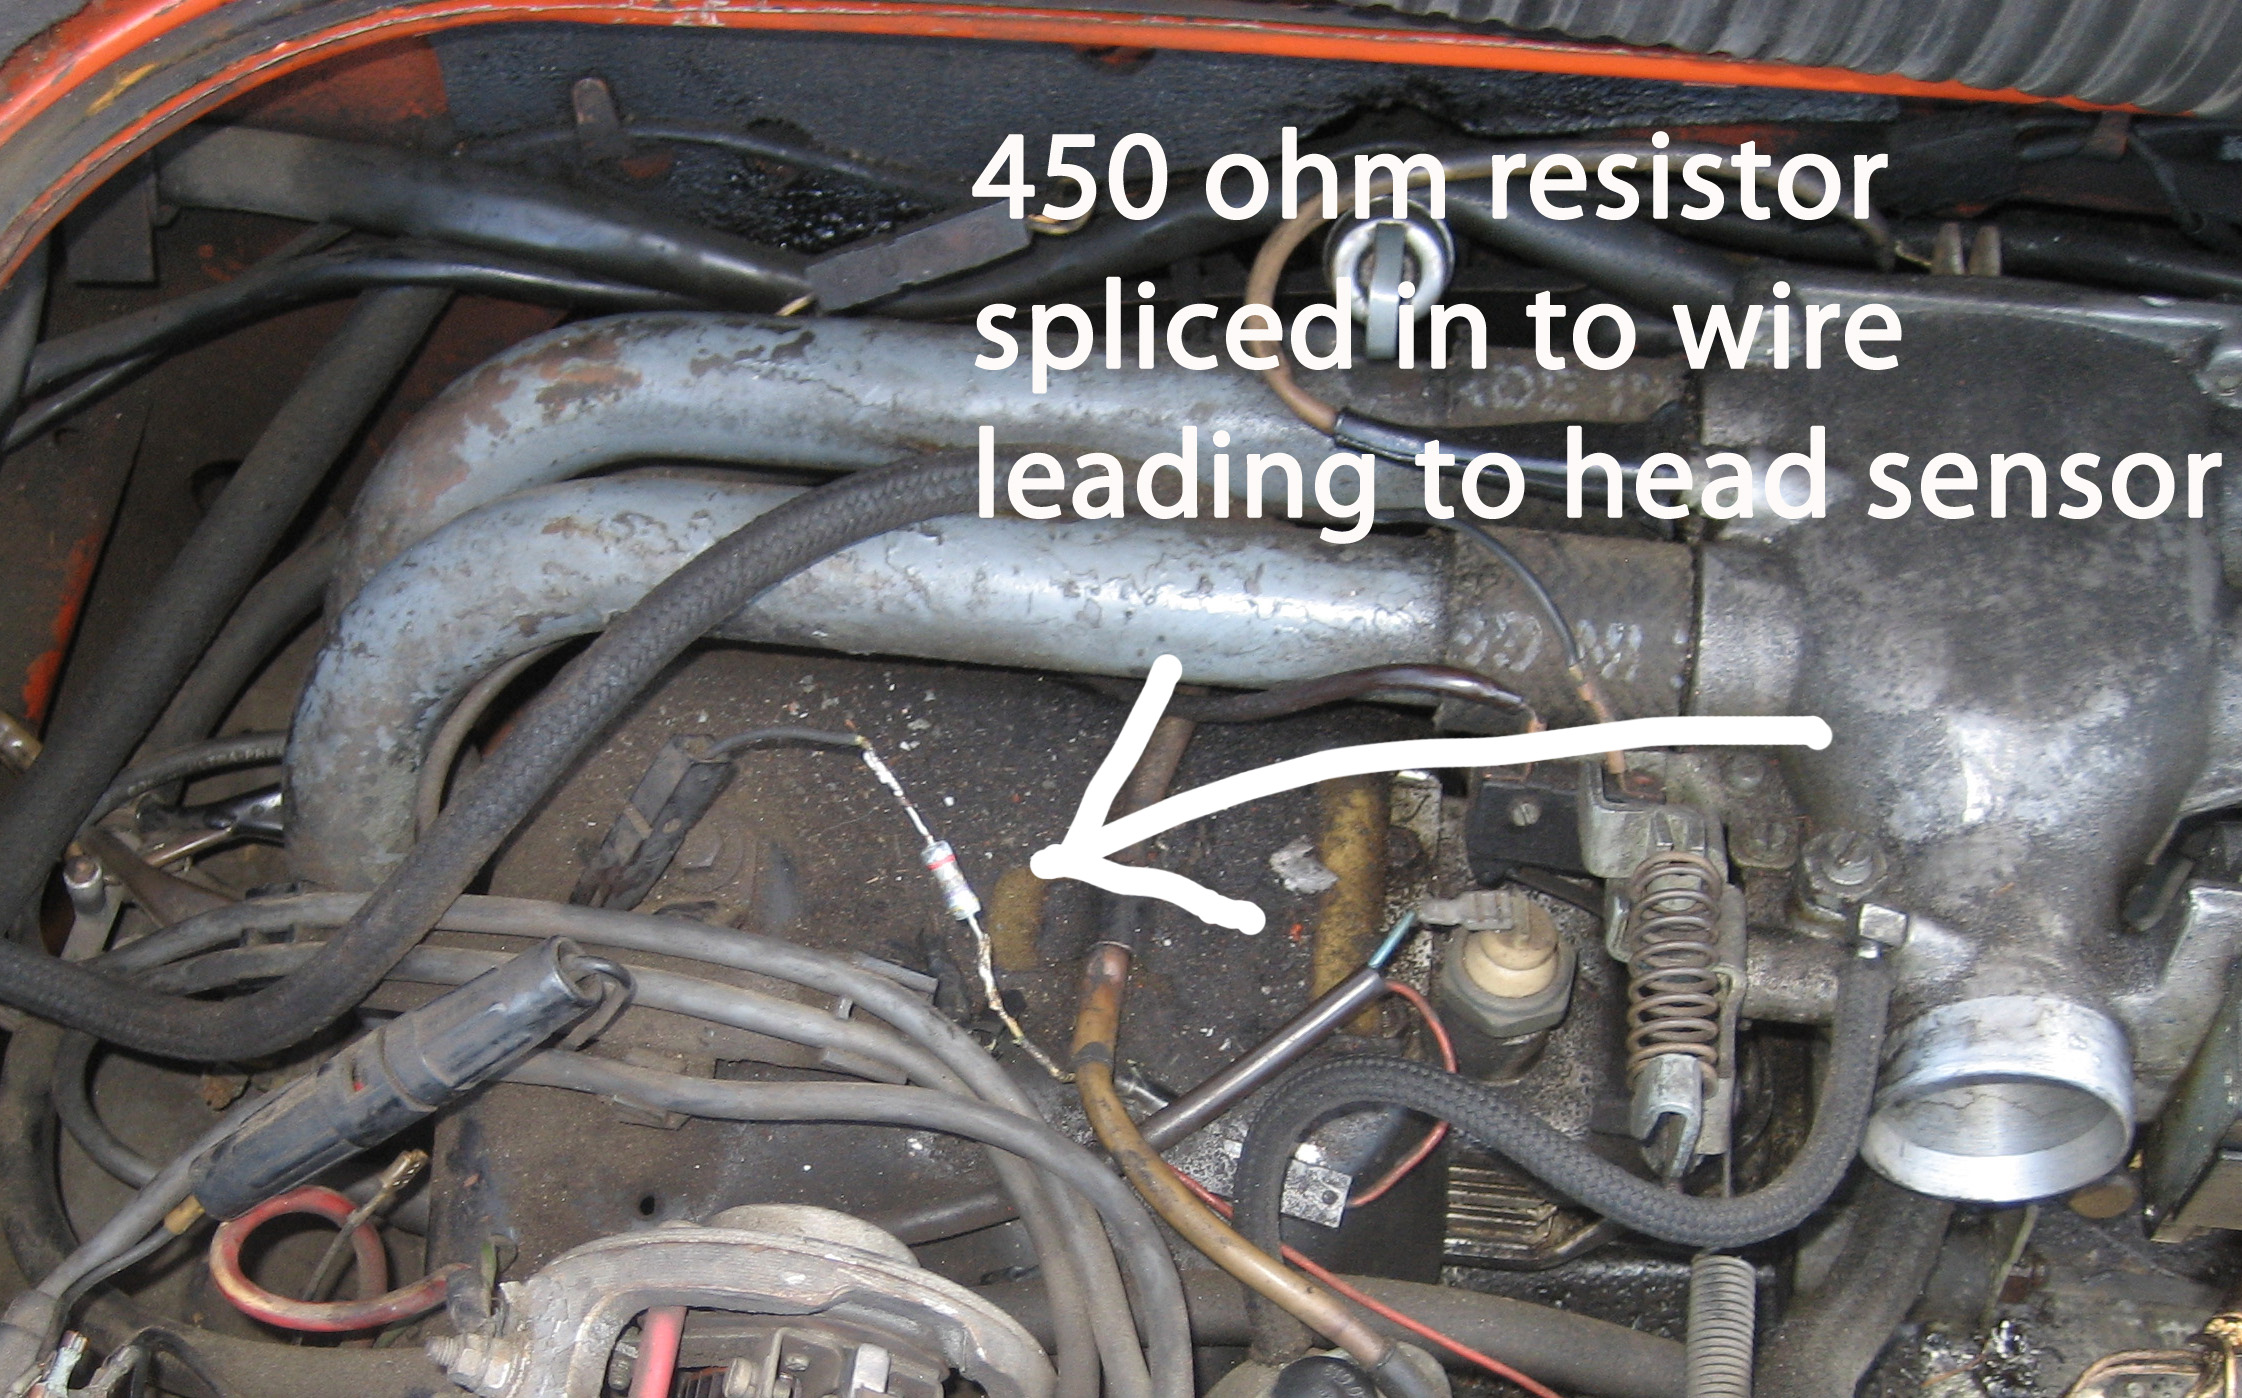 How To Do A Real Tune Up On An Air Cooled Vw Robert Hays German 1972 Volkswagen Beetle Coil Wiring Hattonsresistor